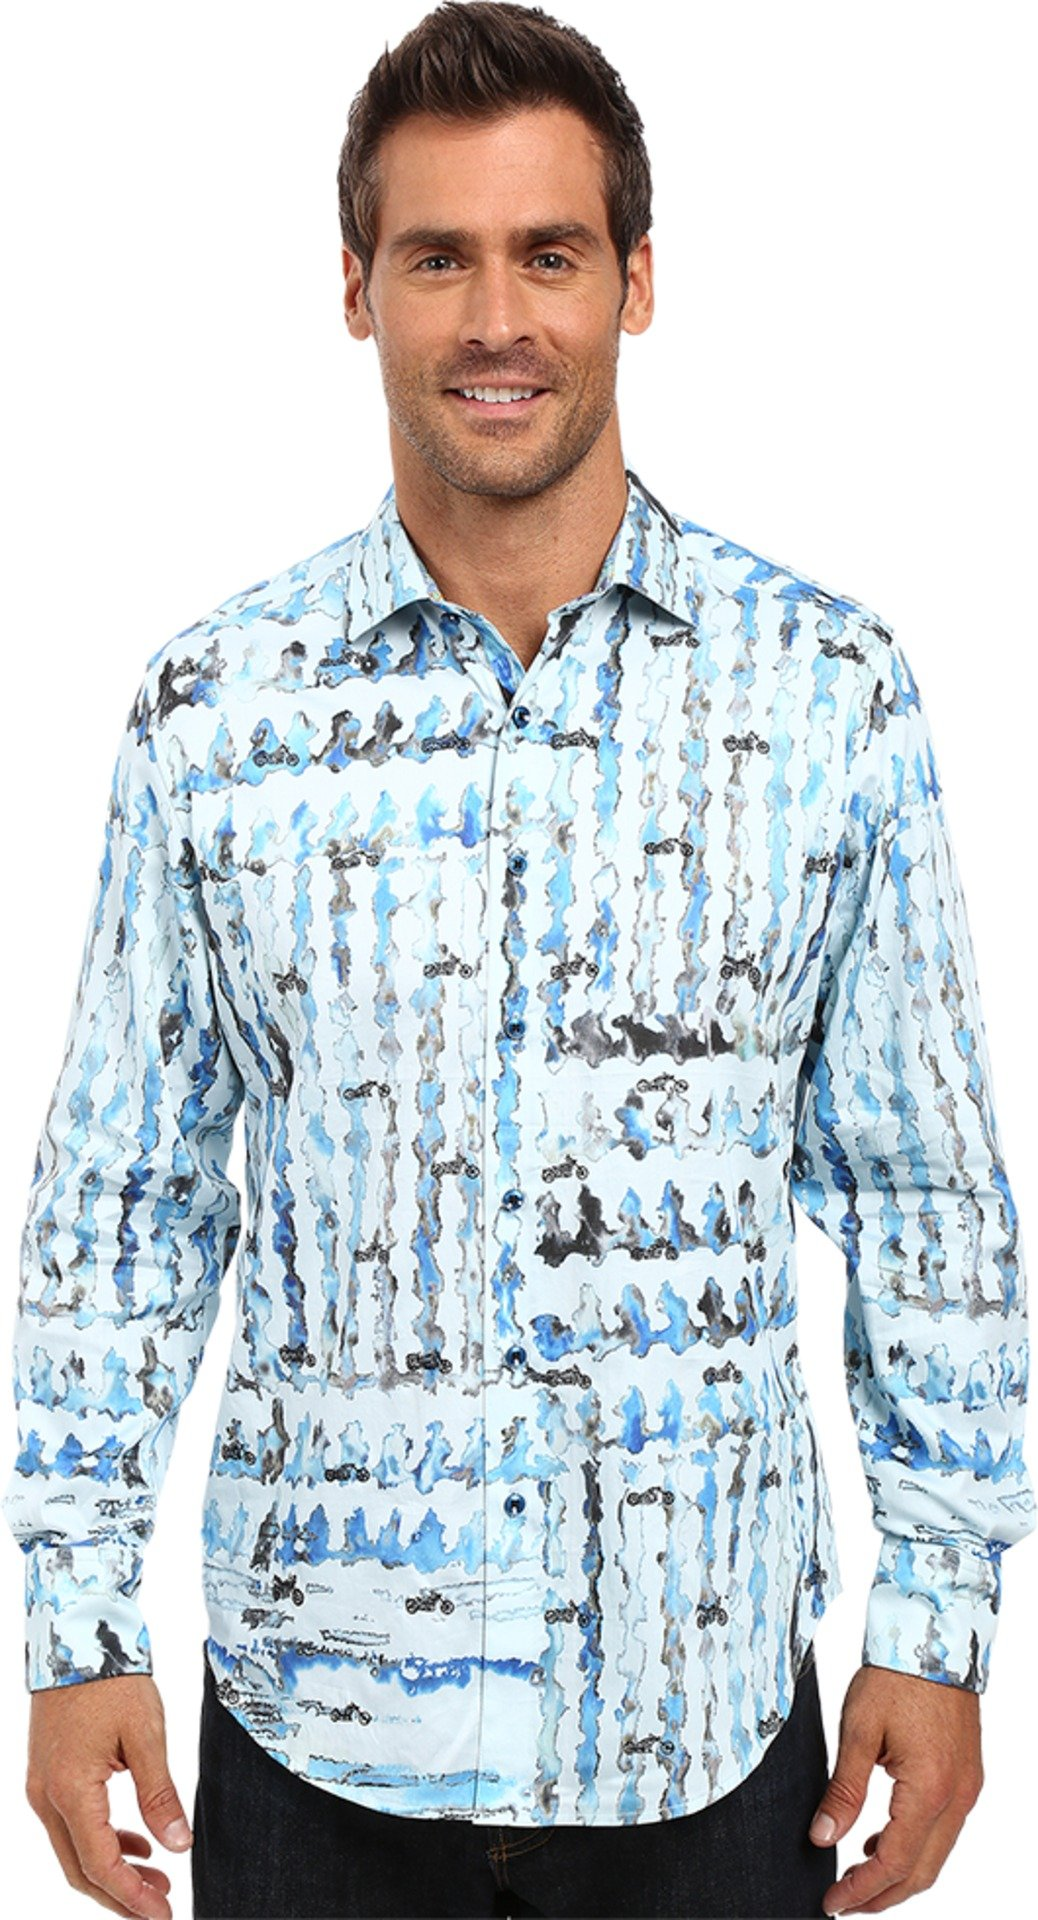 Robert Graham Men's Shallow Ponds Long Sleeve Woven Shirt Seaglass Button-up Shirt SM by Robert Graham